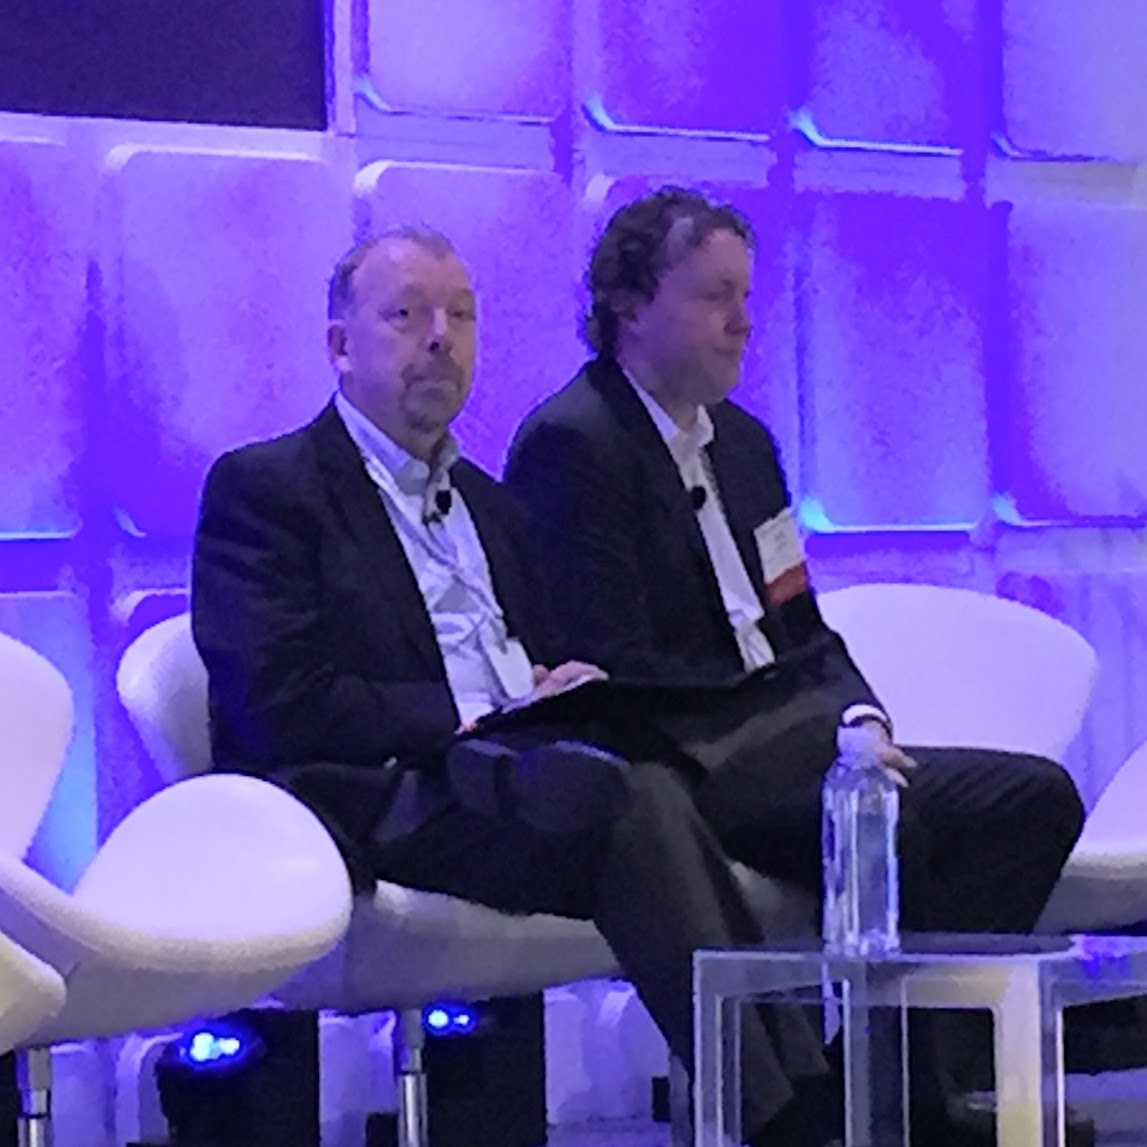 Mike Cagney Todd Baker Face Off at Marketplace Lending and Investing Conference